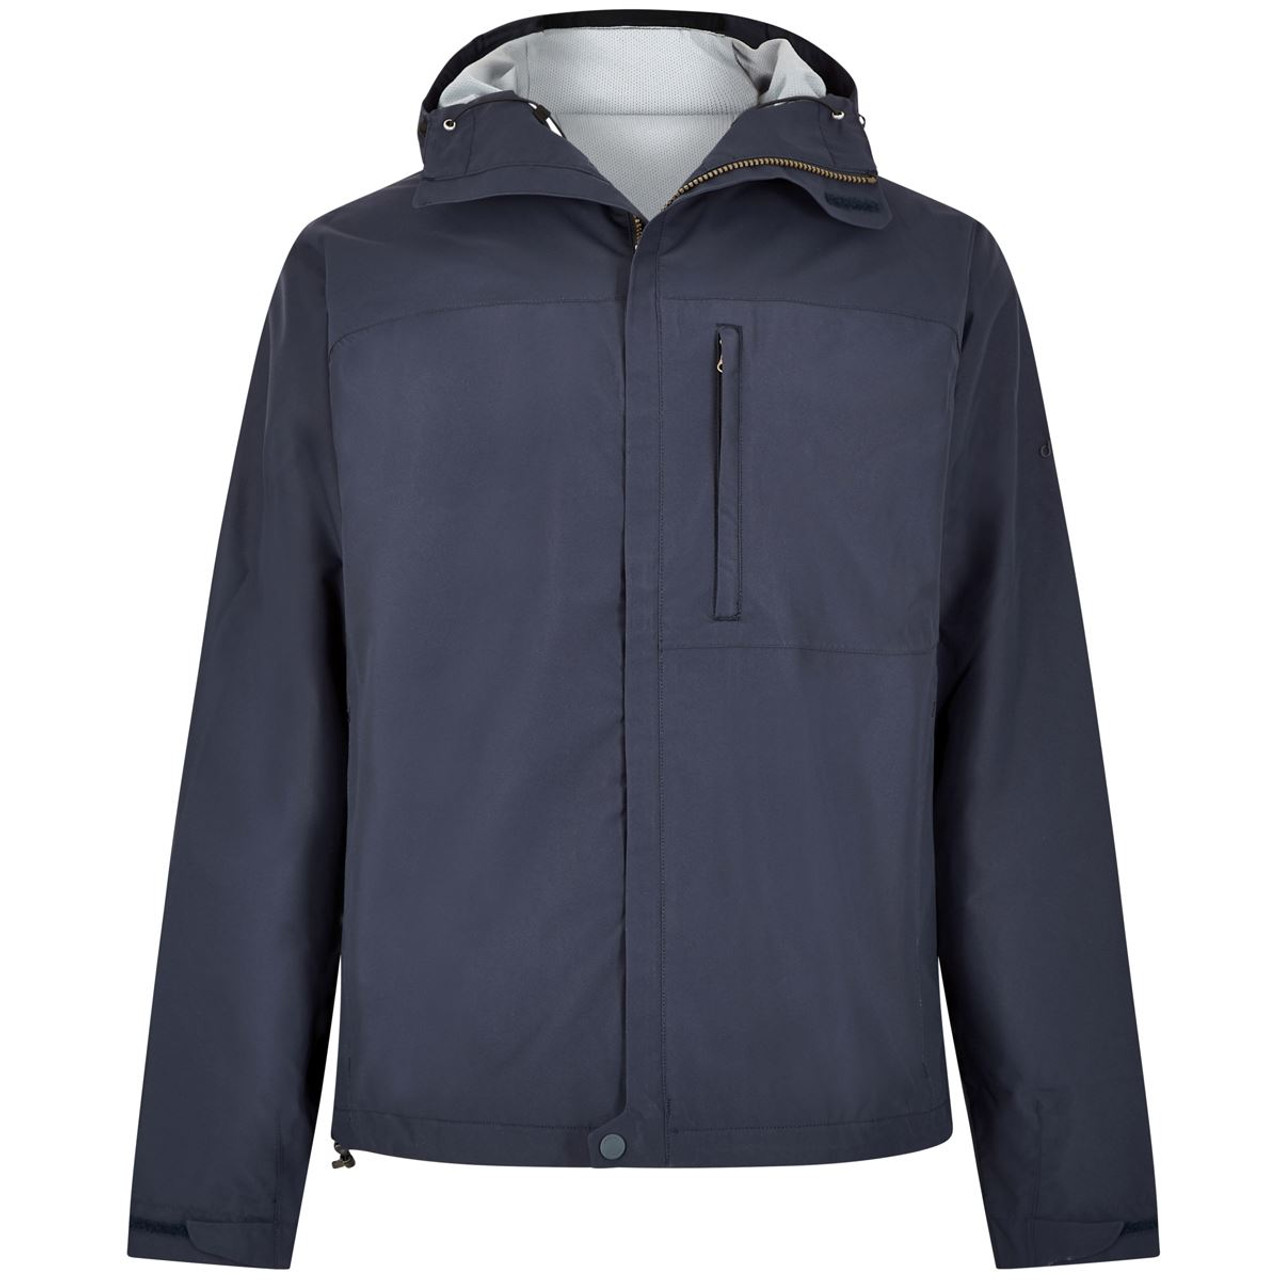 Dubarry Ballycumber Jacket in Navy